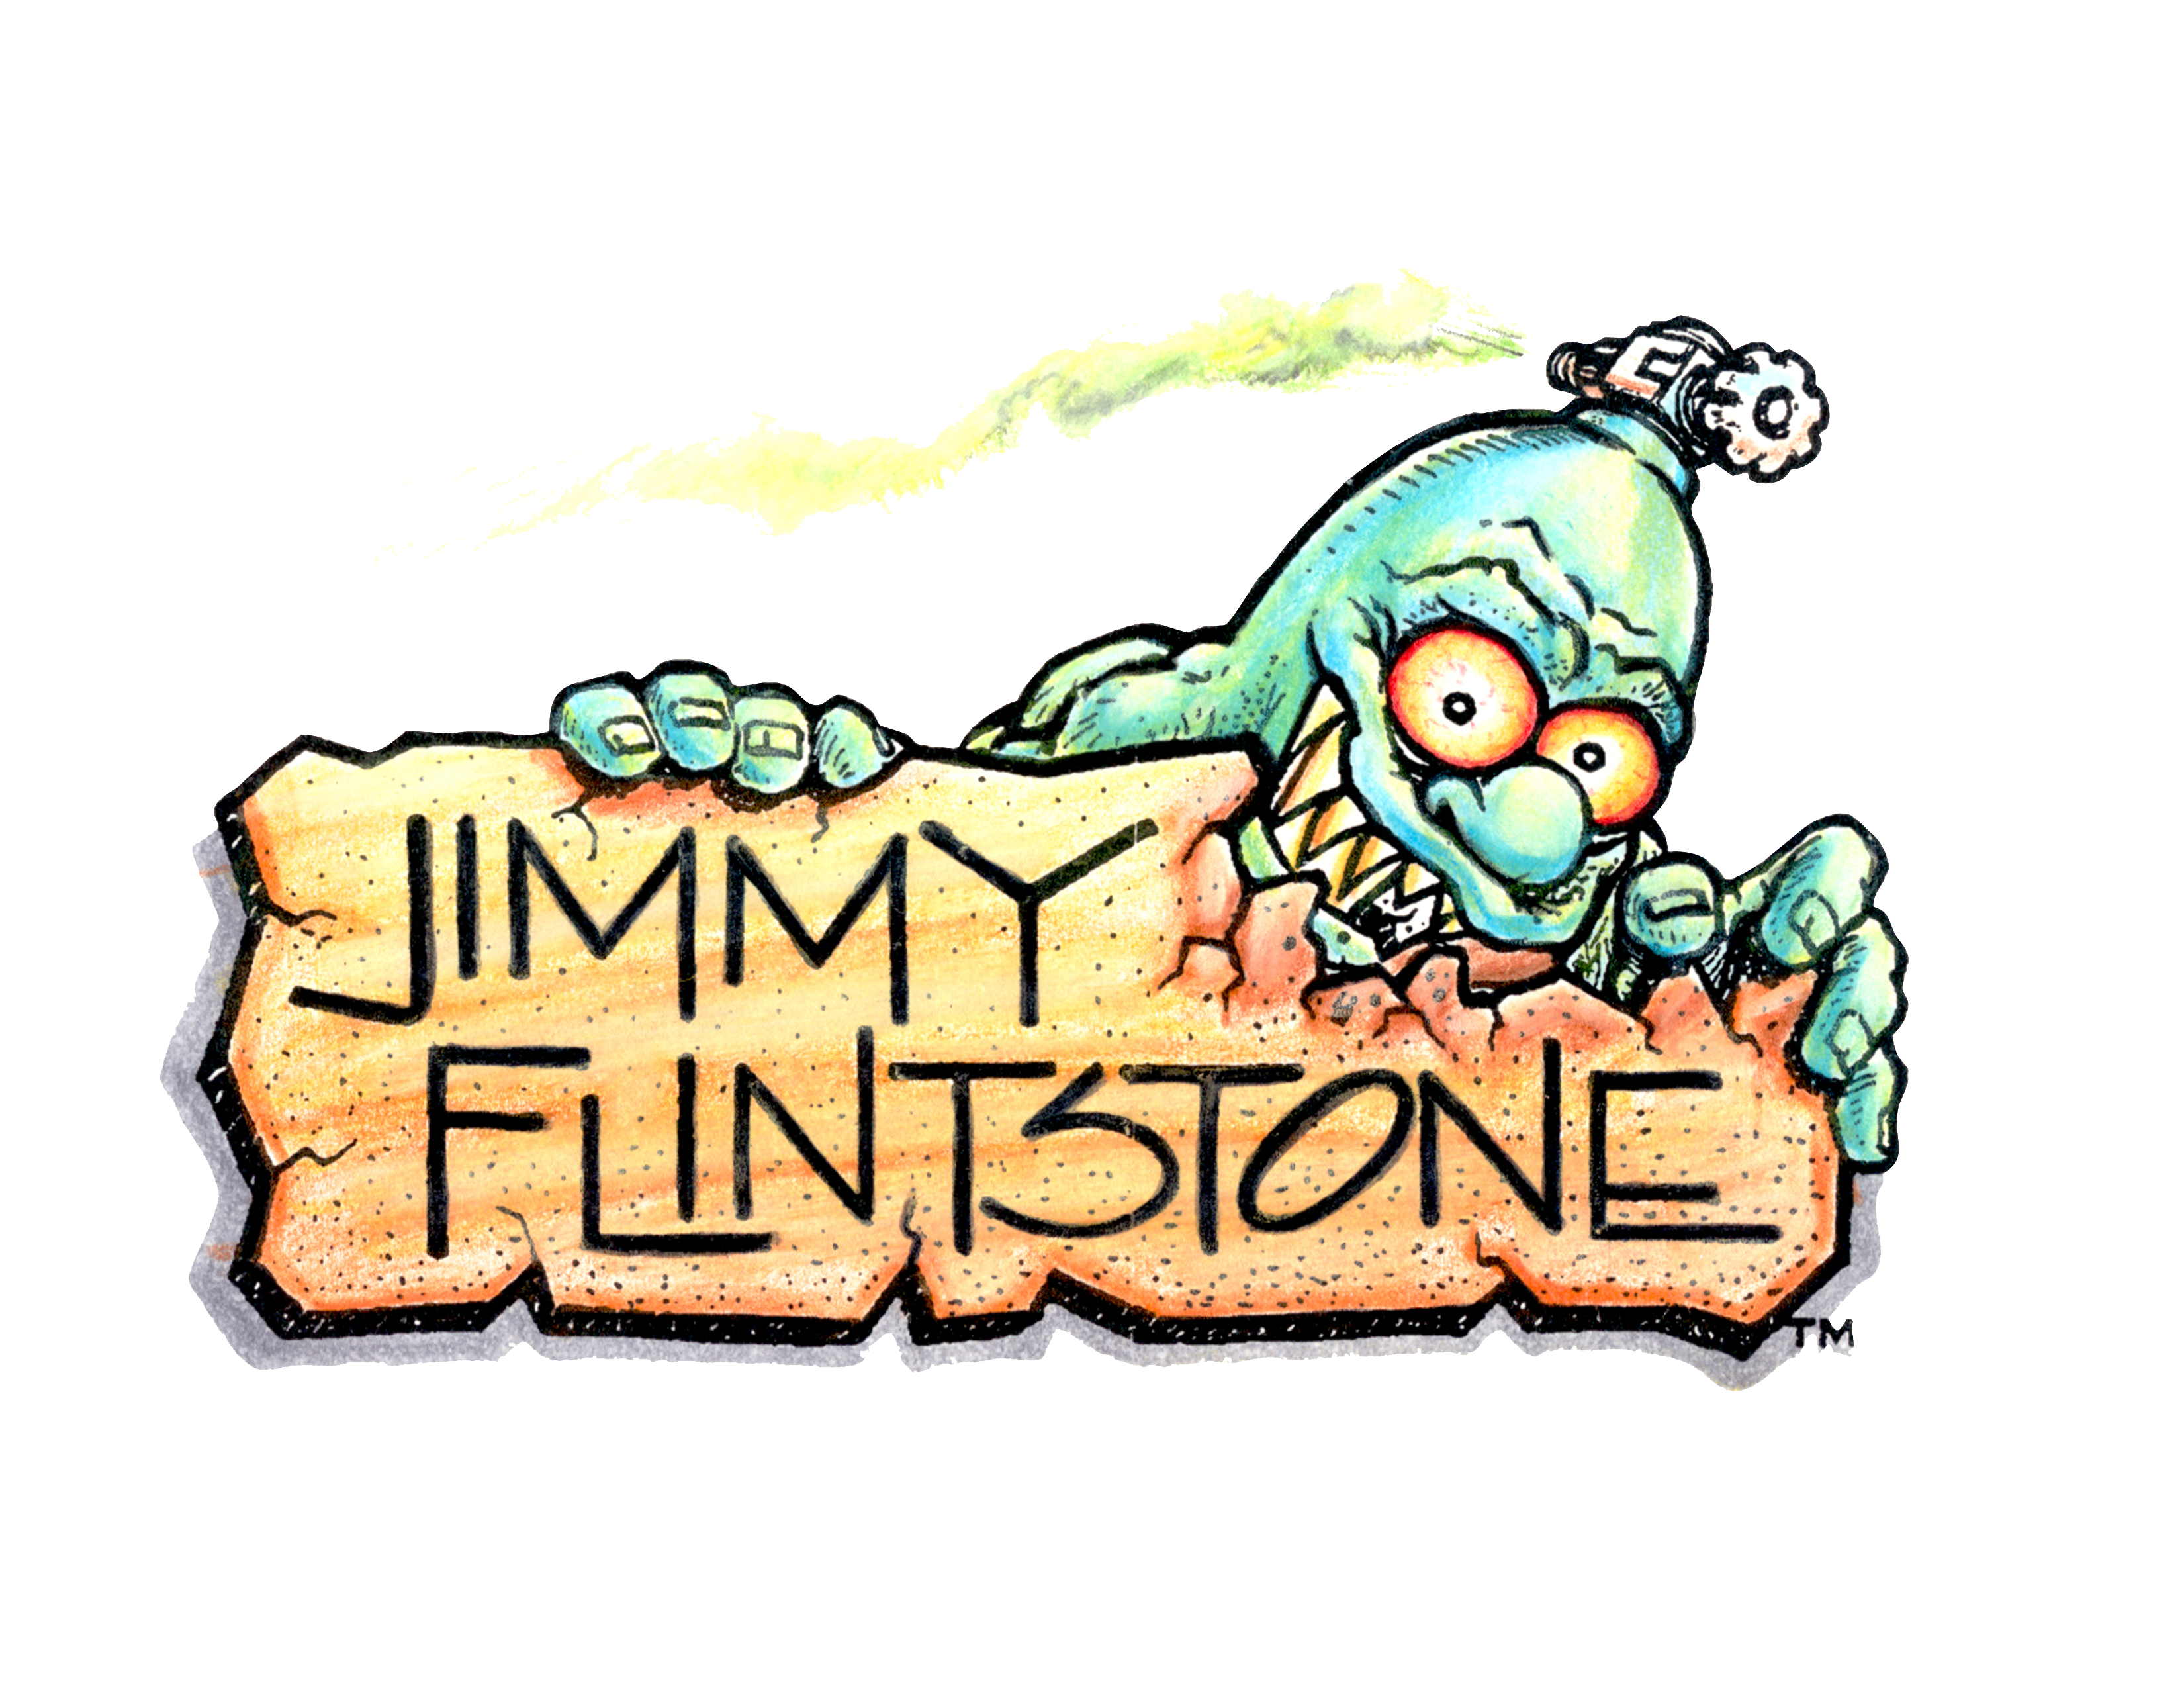 Jimmy Flintstone Studios INC